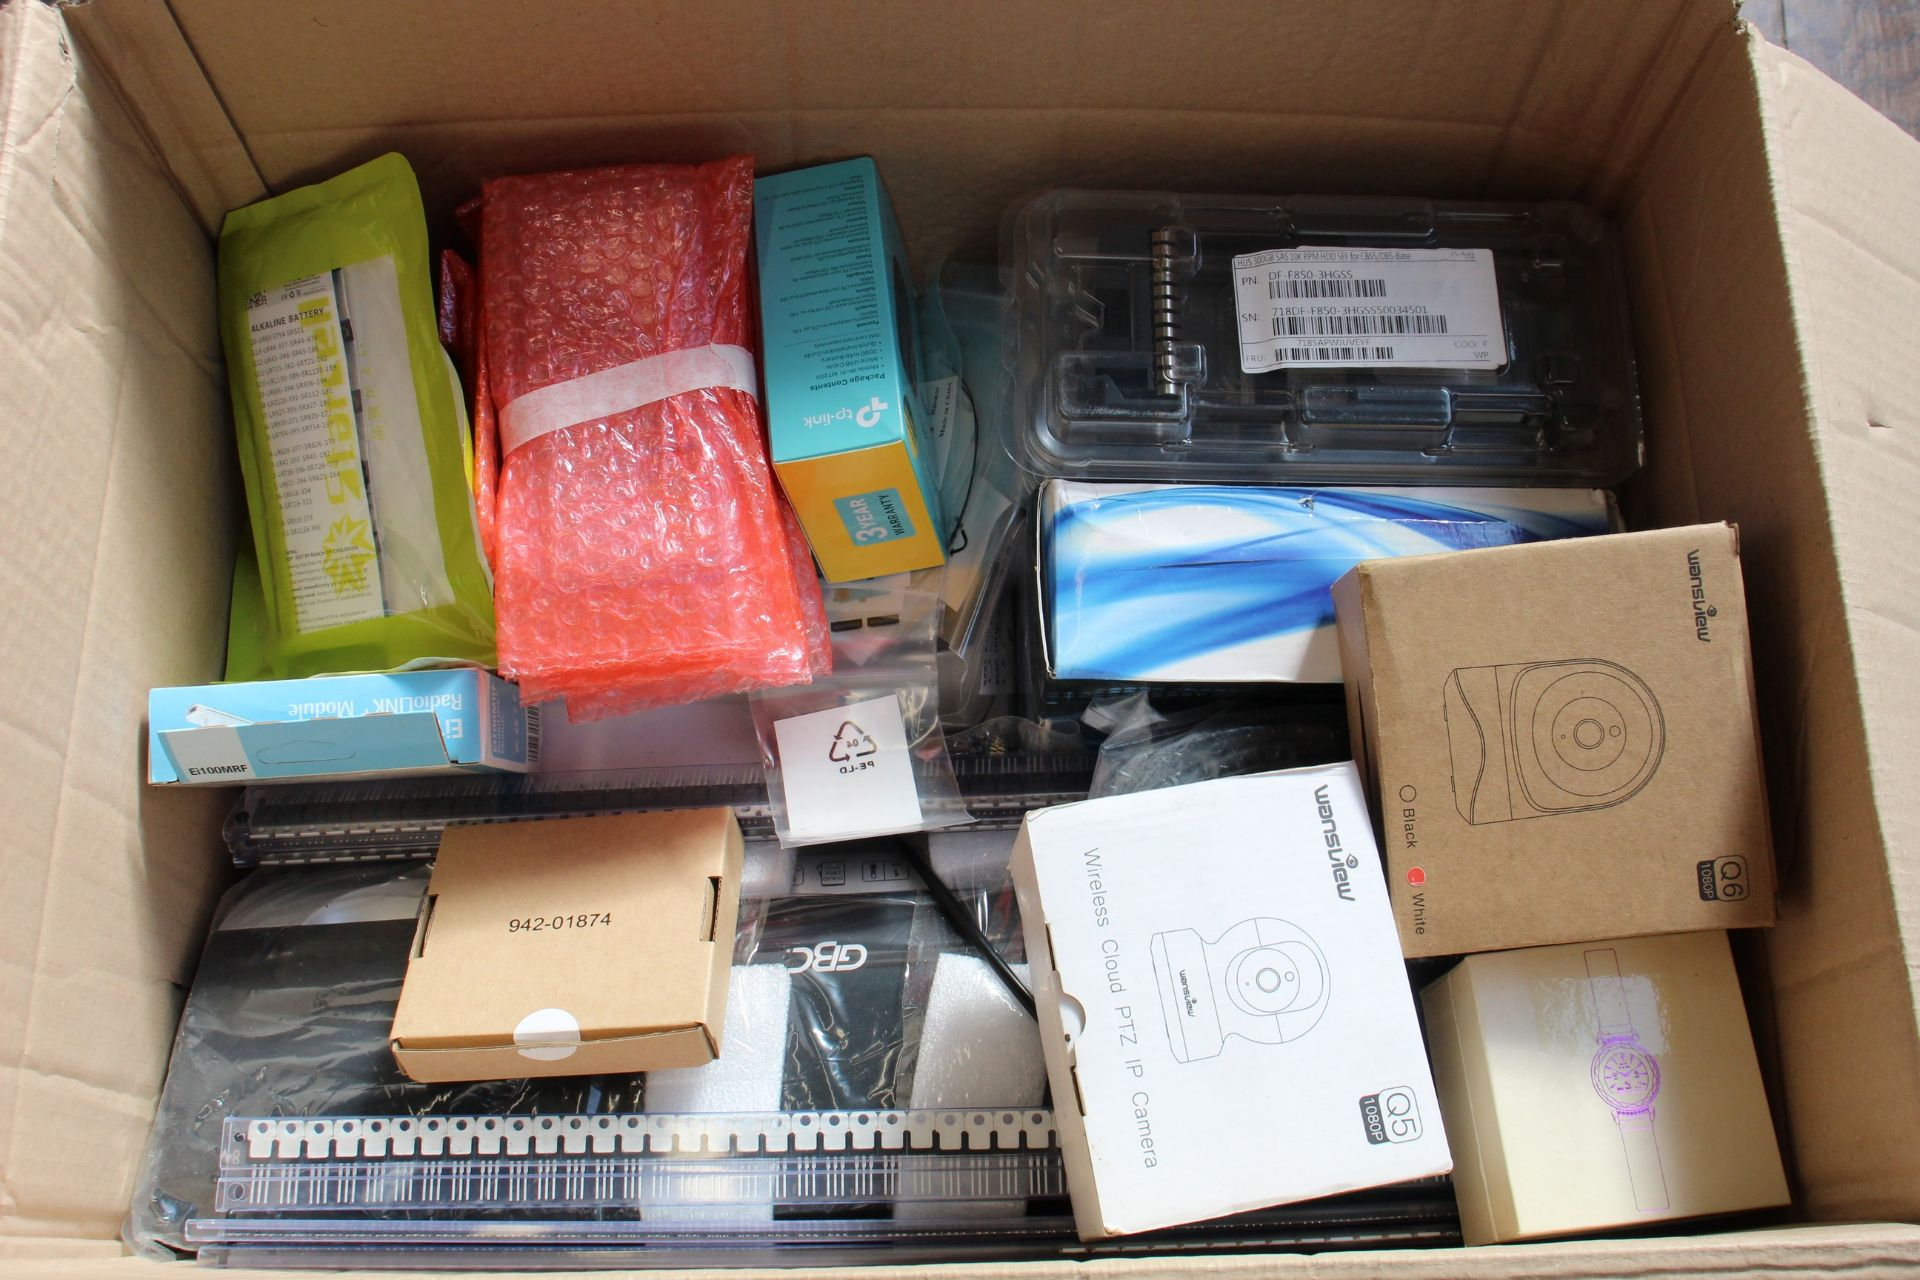 COLLECTION ONLY: A box of assorted new and pre-owned small electrical items and accessories. - Image 3 of 3